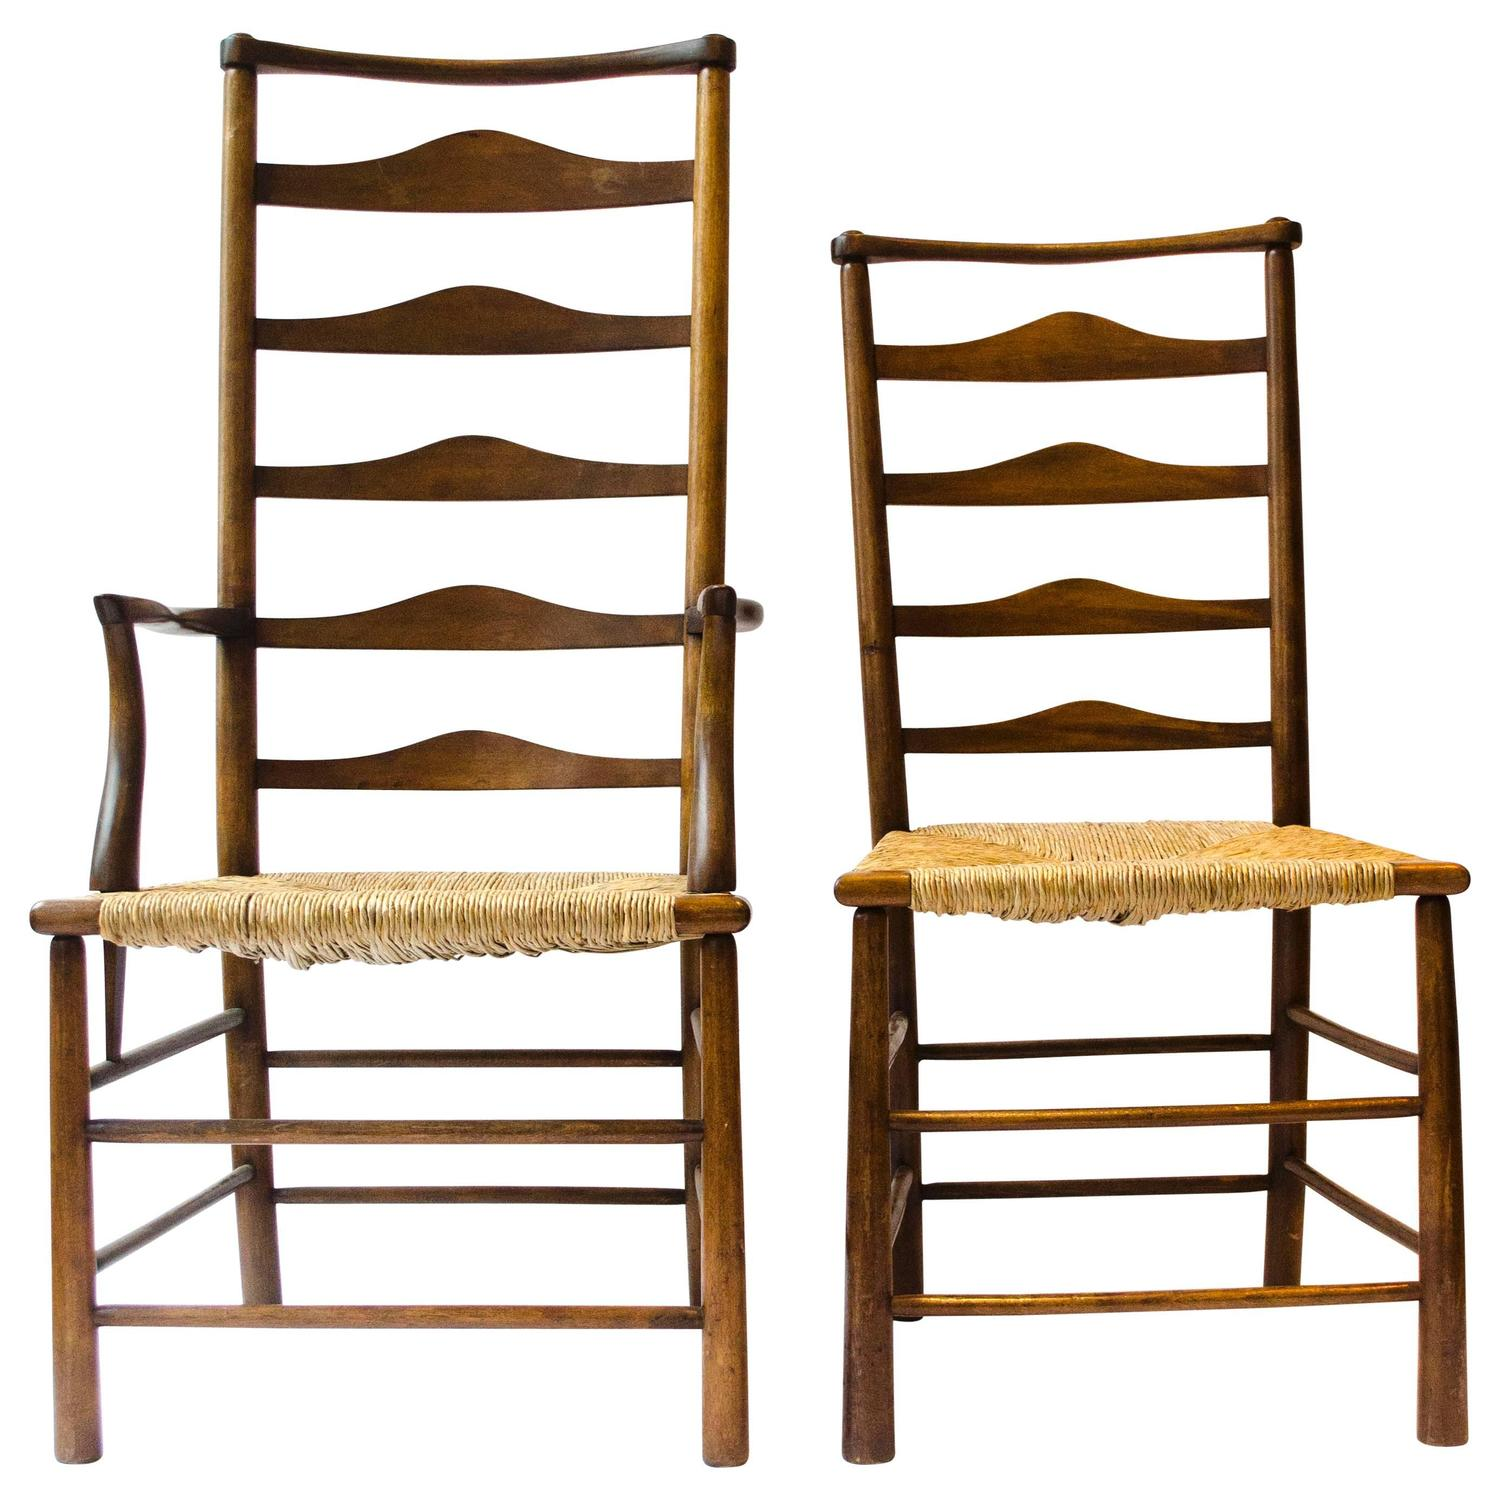 Ladder Back Chairs 190 For Sale on 1stdibs